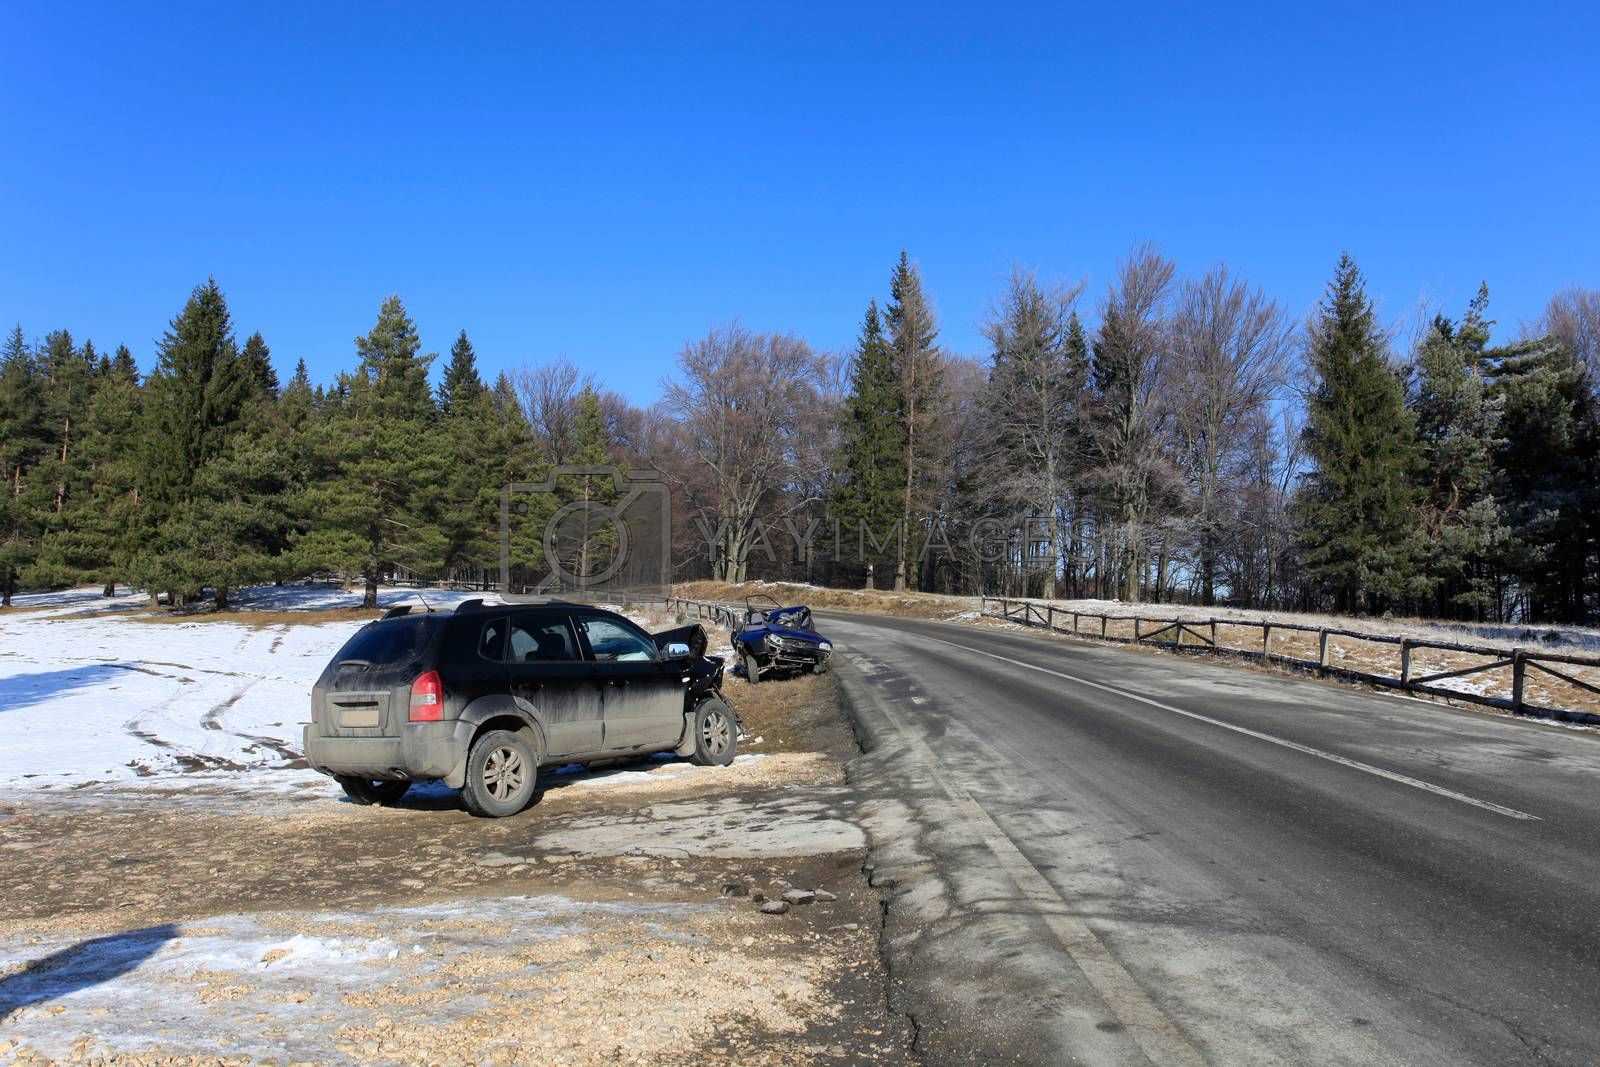 Two cars damaged by crash accident on side of the road